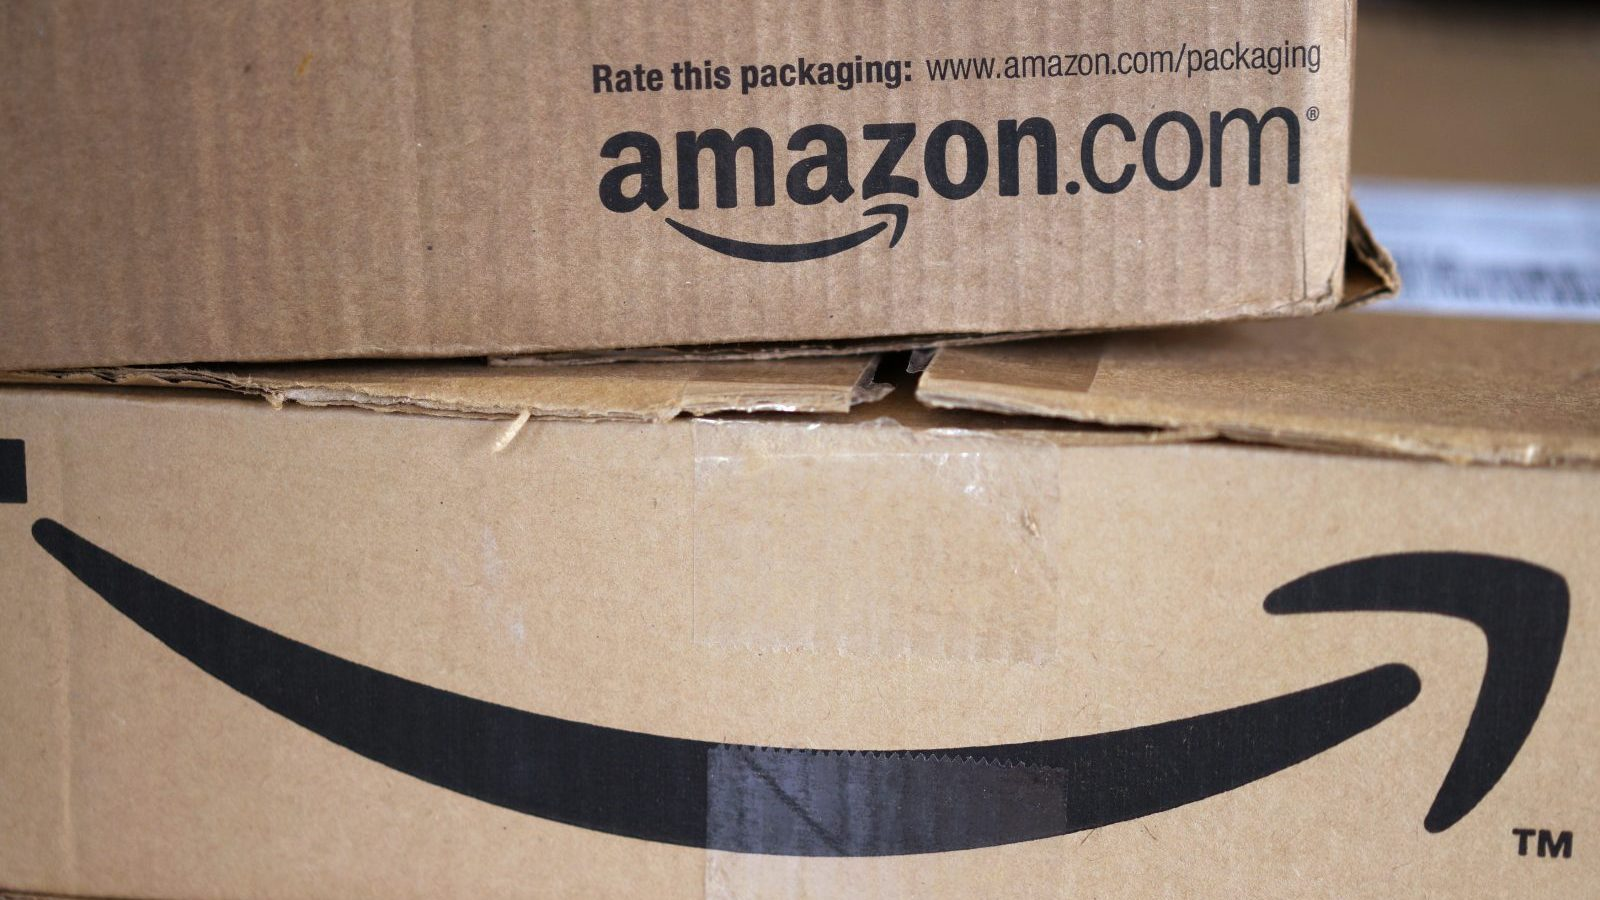 Two freshly delivered Amazon boxes are seen on a counter in Golden, Colorado August 27, 2014. With people increasingly accessing the Internet from smartphones and tablets, online companies ranging from social networks such as Facebook Inc to e-commerce companies like Amazon.com Inc have been investing heavily to develop their mobile platforms.  REUTERS/Rick Wilking (UNITED STATES - Tags: BUSINESS SCIENCE TECHNOLOGY TELECOMS) - GM1EA8S0ISL01